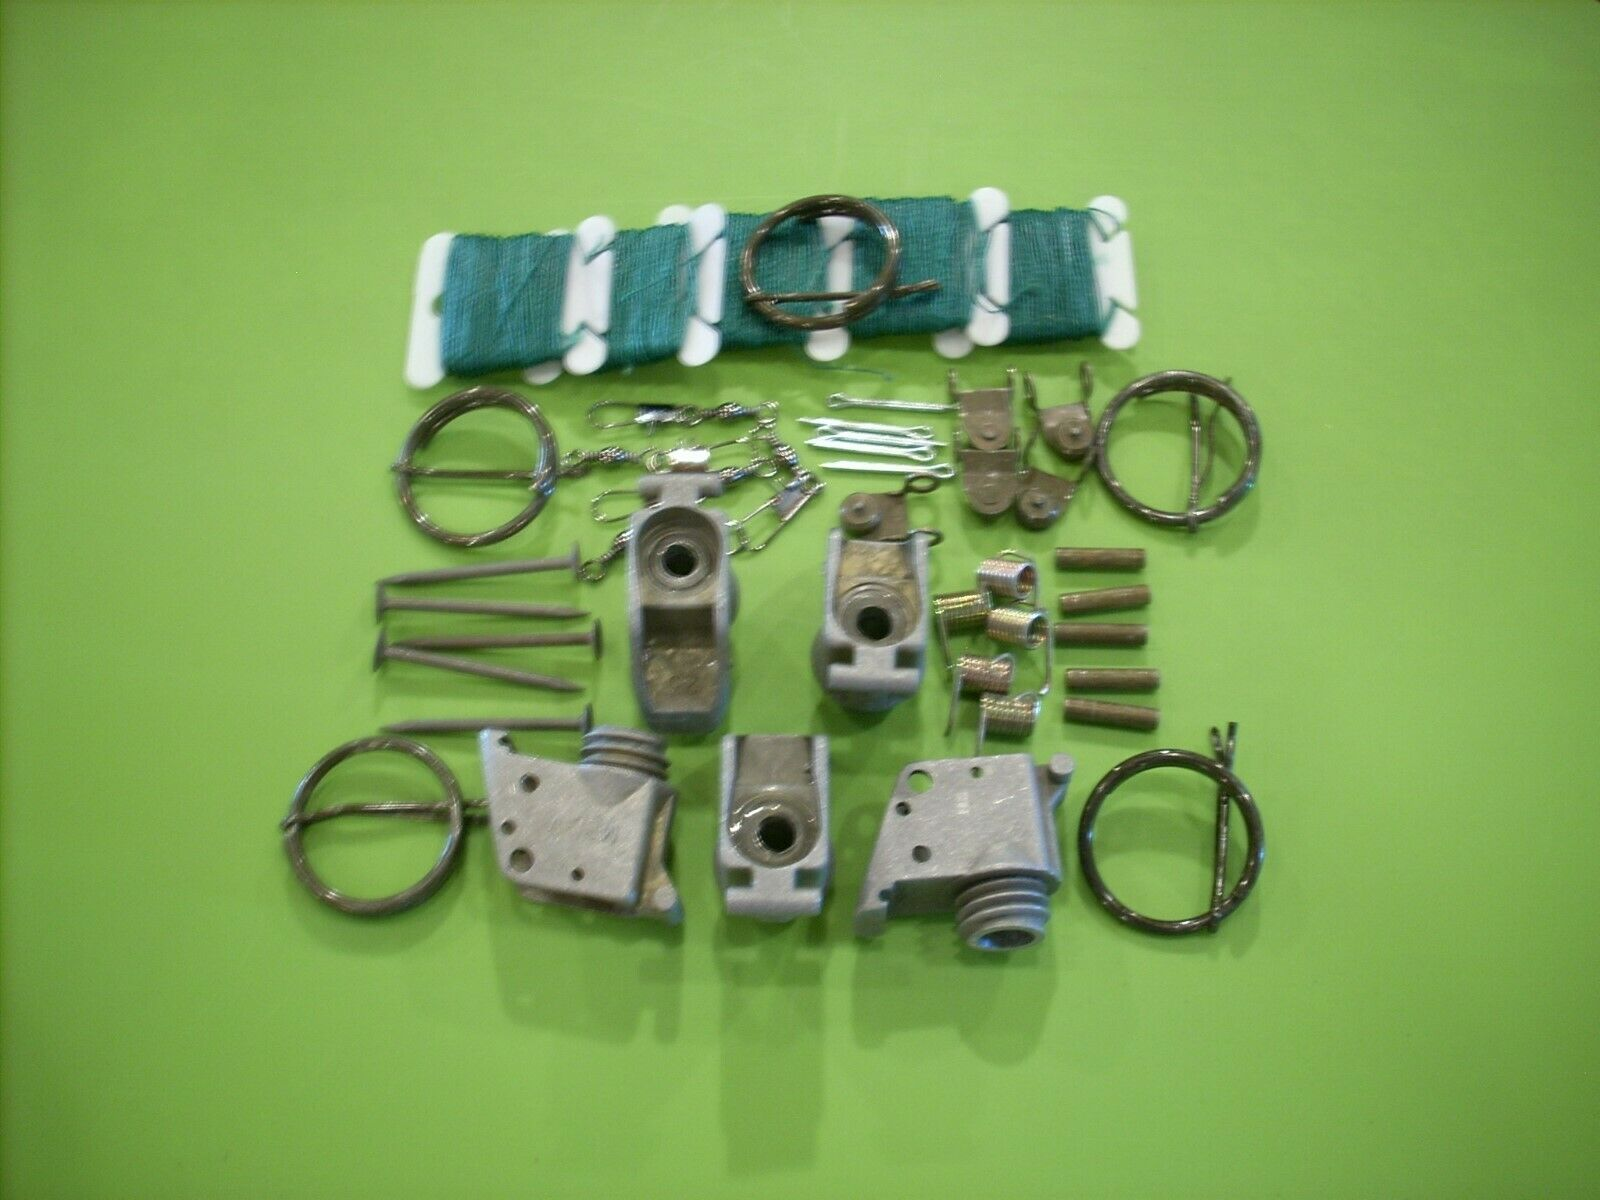 5ea. Signaling, Perimeter, Trip Wire Alarms, Modified, Complete Kit